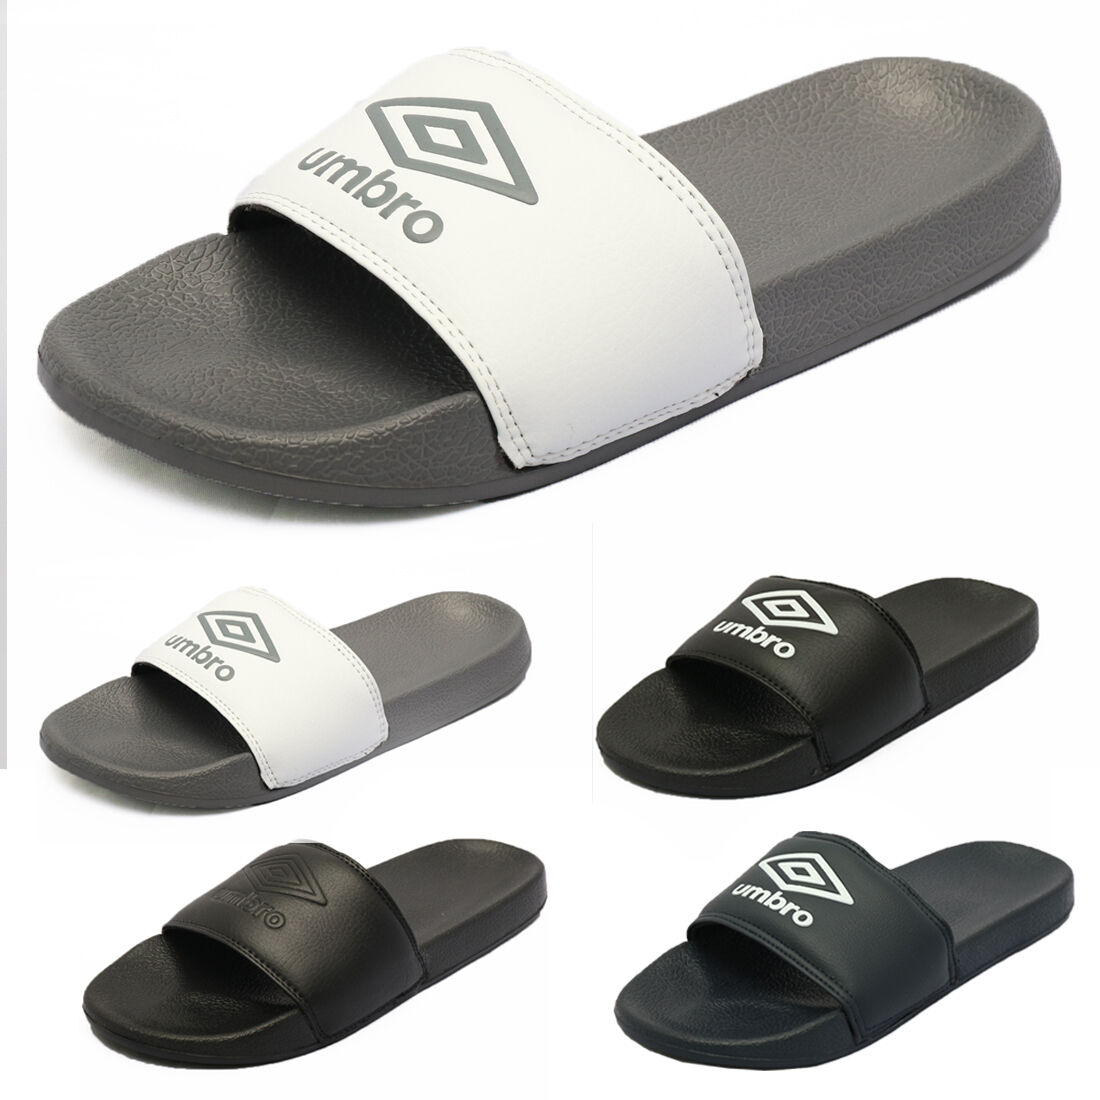 New Umbro Slippers Ums4000sd Majors 4 Colors Ebay